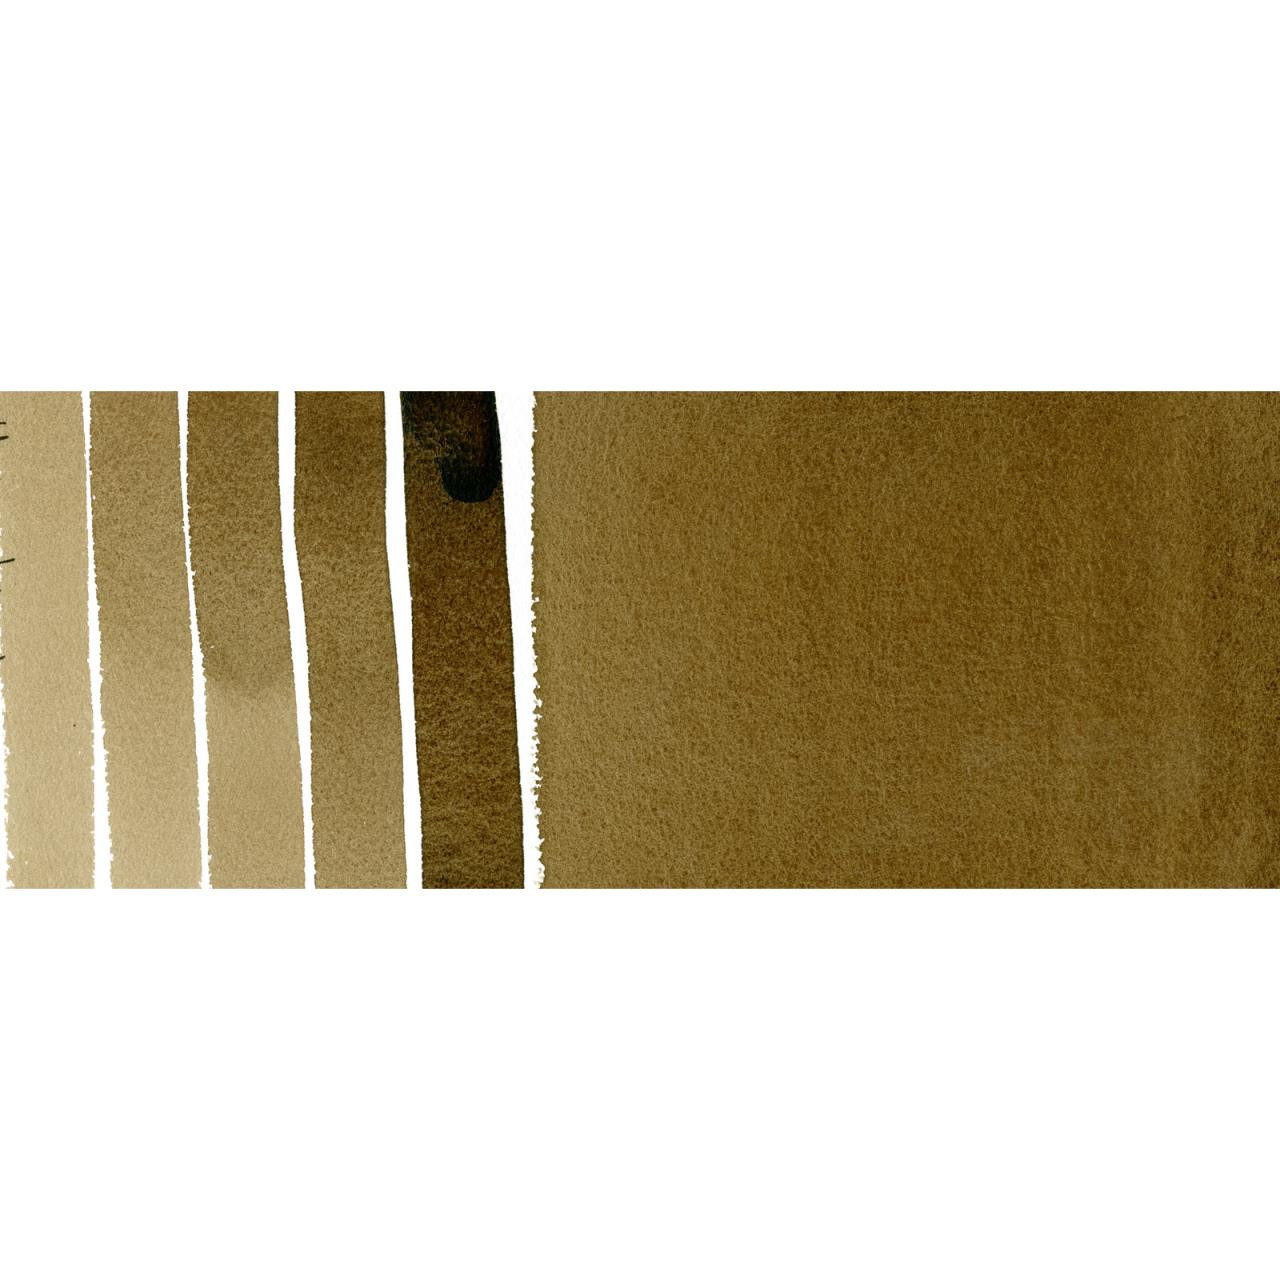 Raw Umber, DANIEL SMITH Extra Fine Watercolors 5ml Tubes -